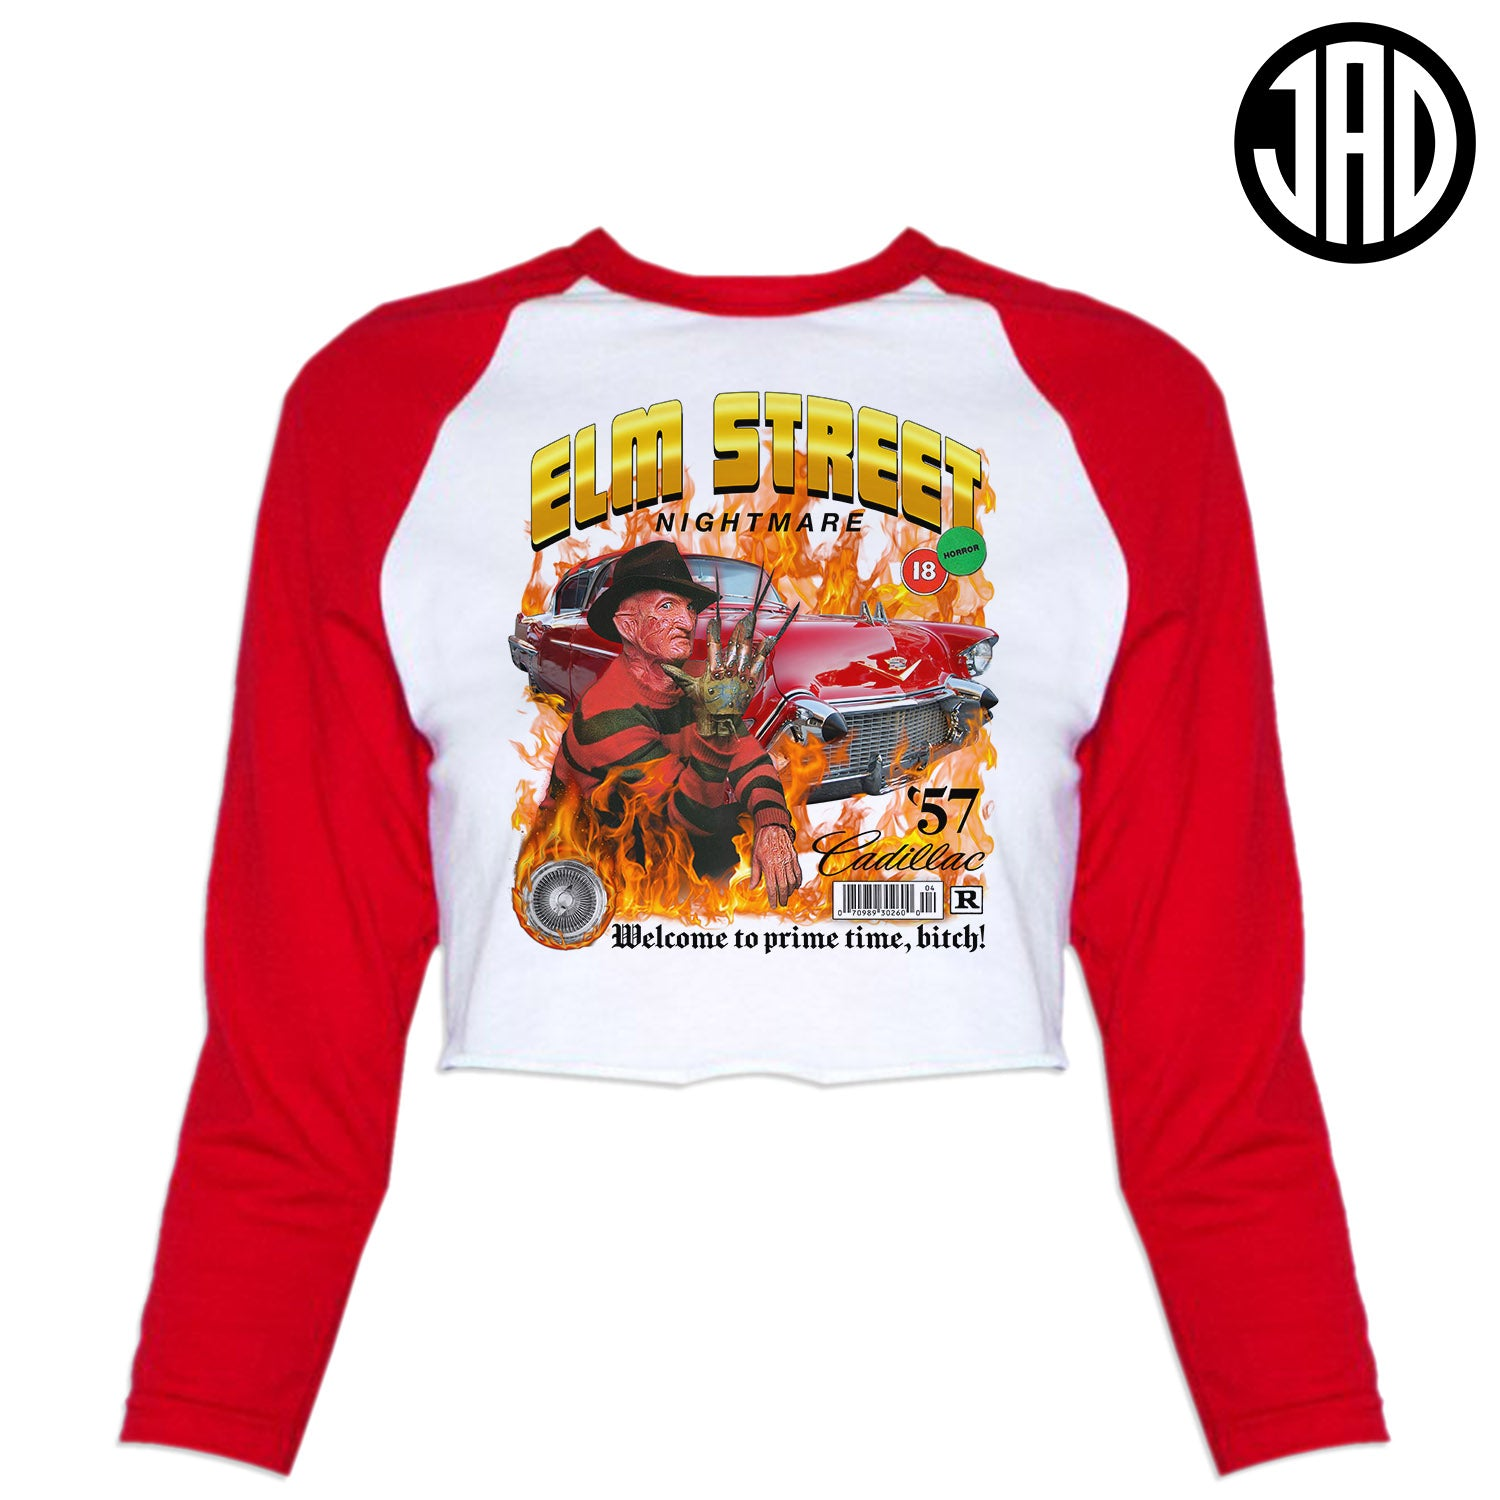 Lowrider Fred - Women's Cropped Baseball Tee